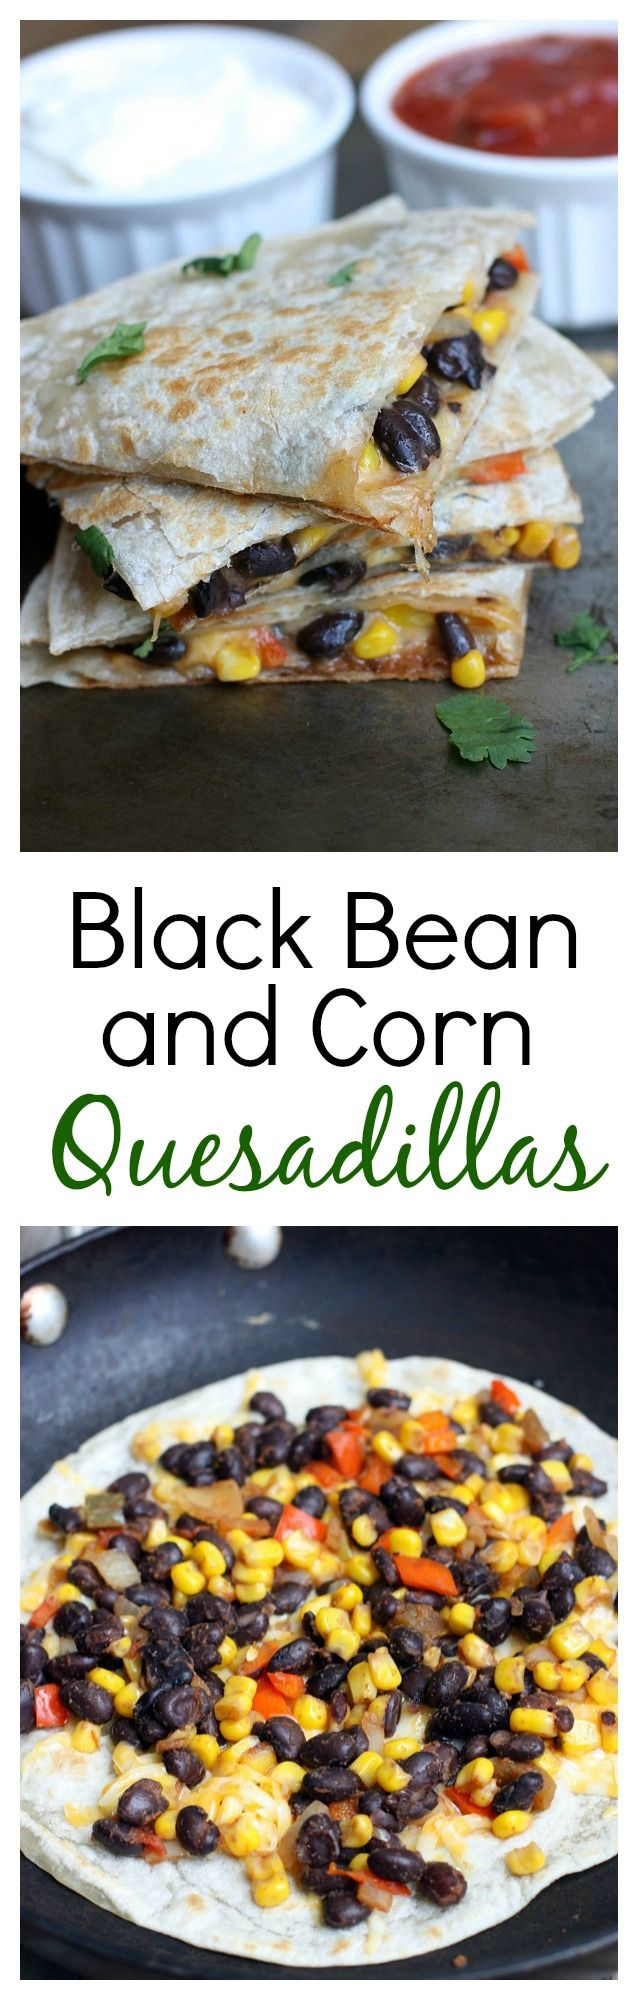 Black Bean & Corn Quesadillas! Gymvets.com #blackbean #quesadilla #mexican #healthy #cleaneating